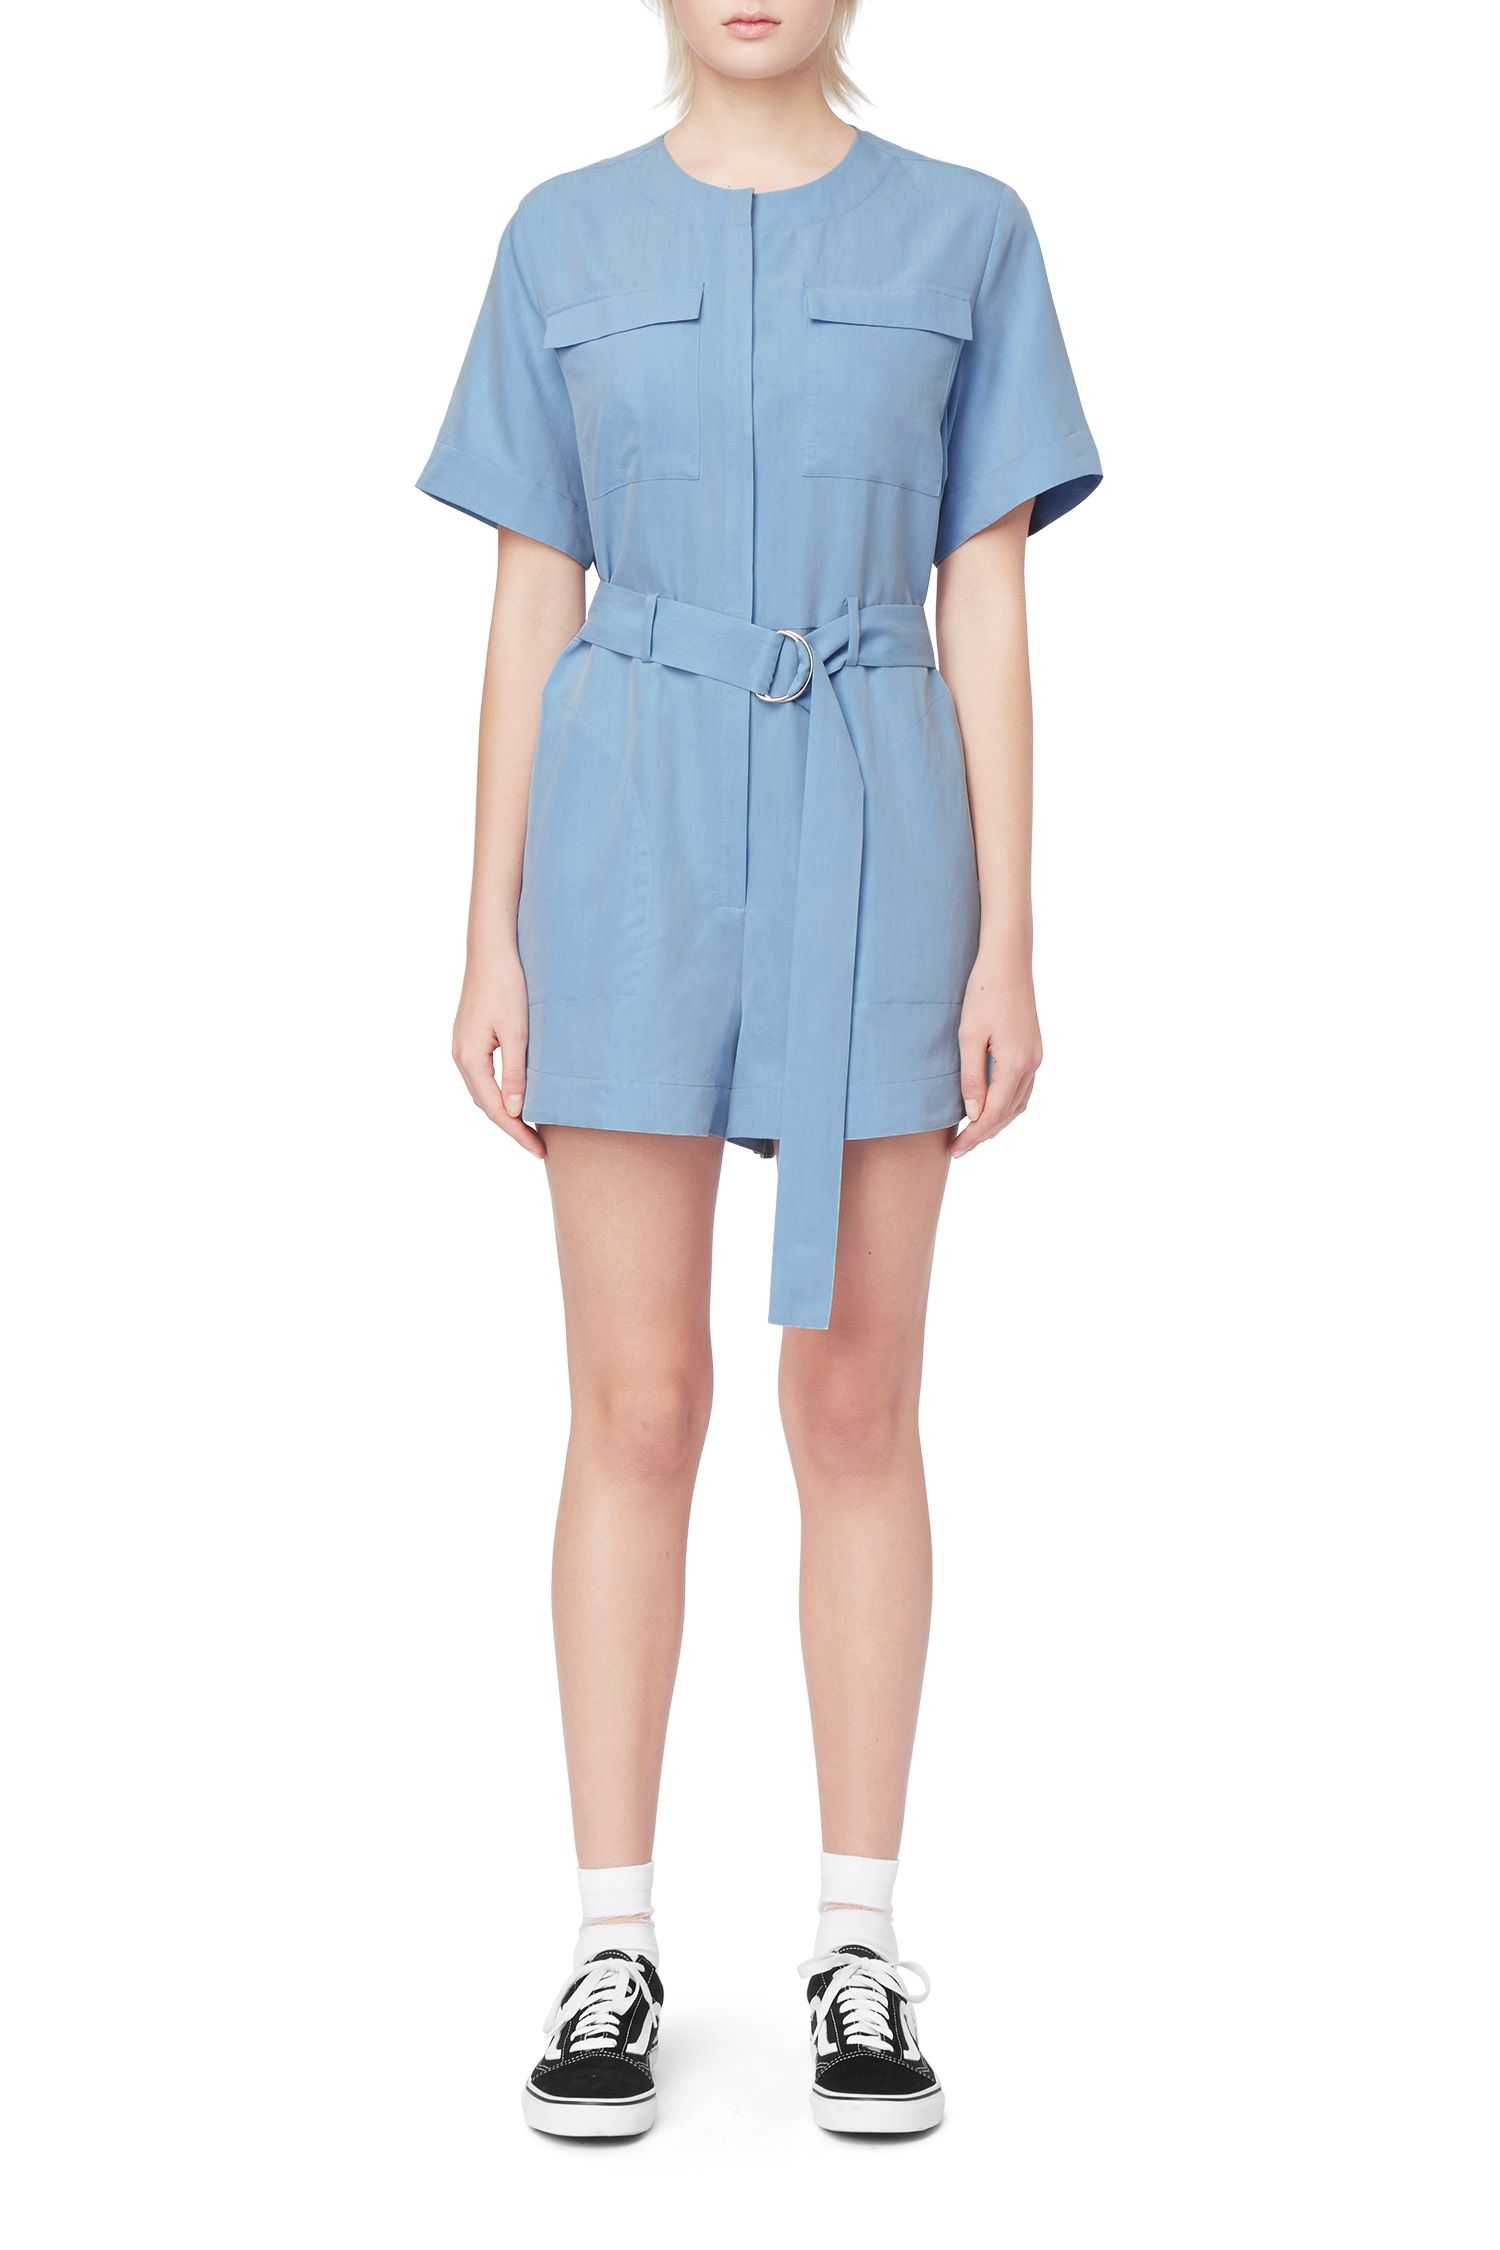 Et Of Pingis Weekday Blue Jumpsuit Vêtements Image In 6 A4wzfHPq